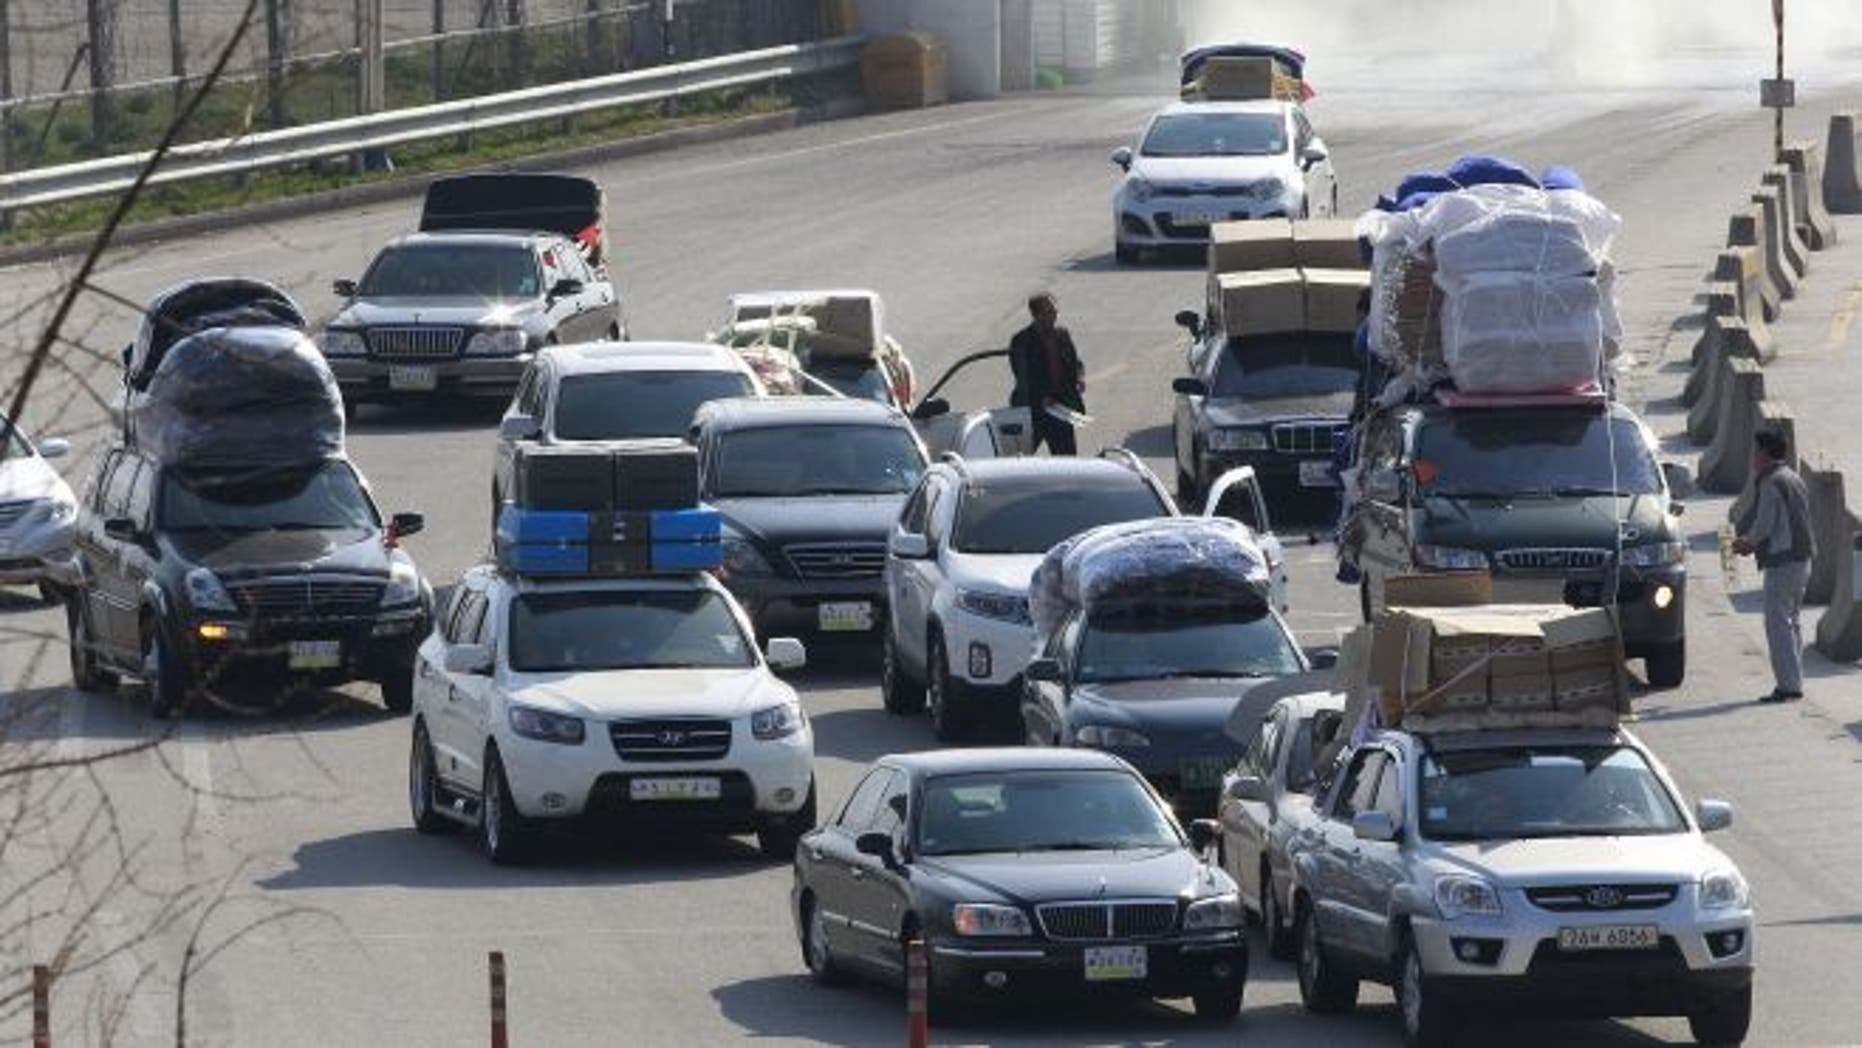 April 27, 2013: South Korean vehicles carrying products from North Korea's Kaesong industrial complex arrive at the customs, immigration and quarantine office near the border village of Panmunjom in Paju, South Korea.